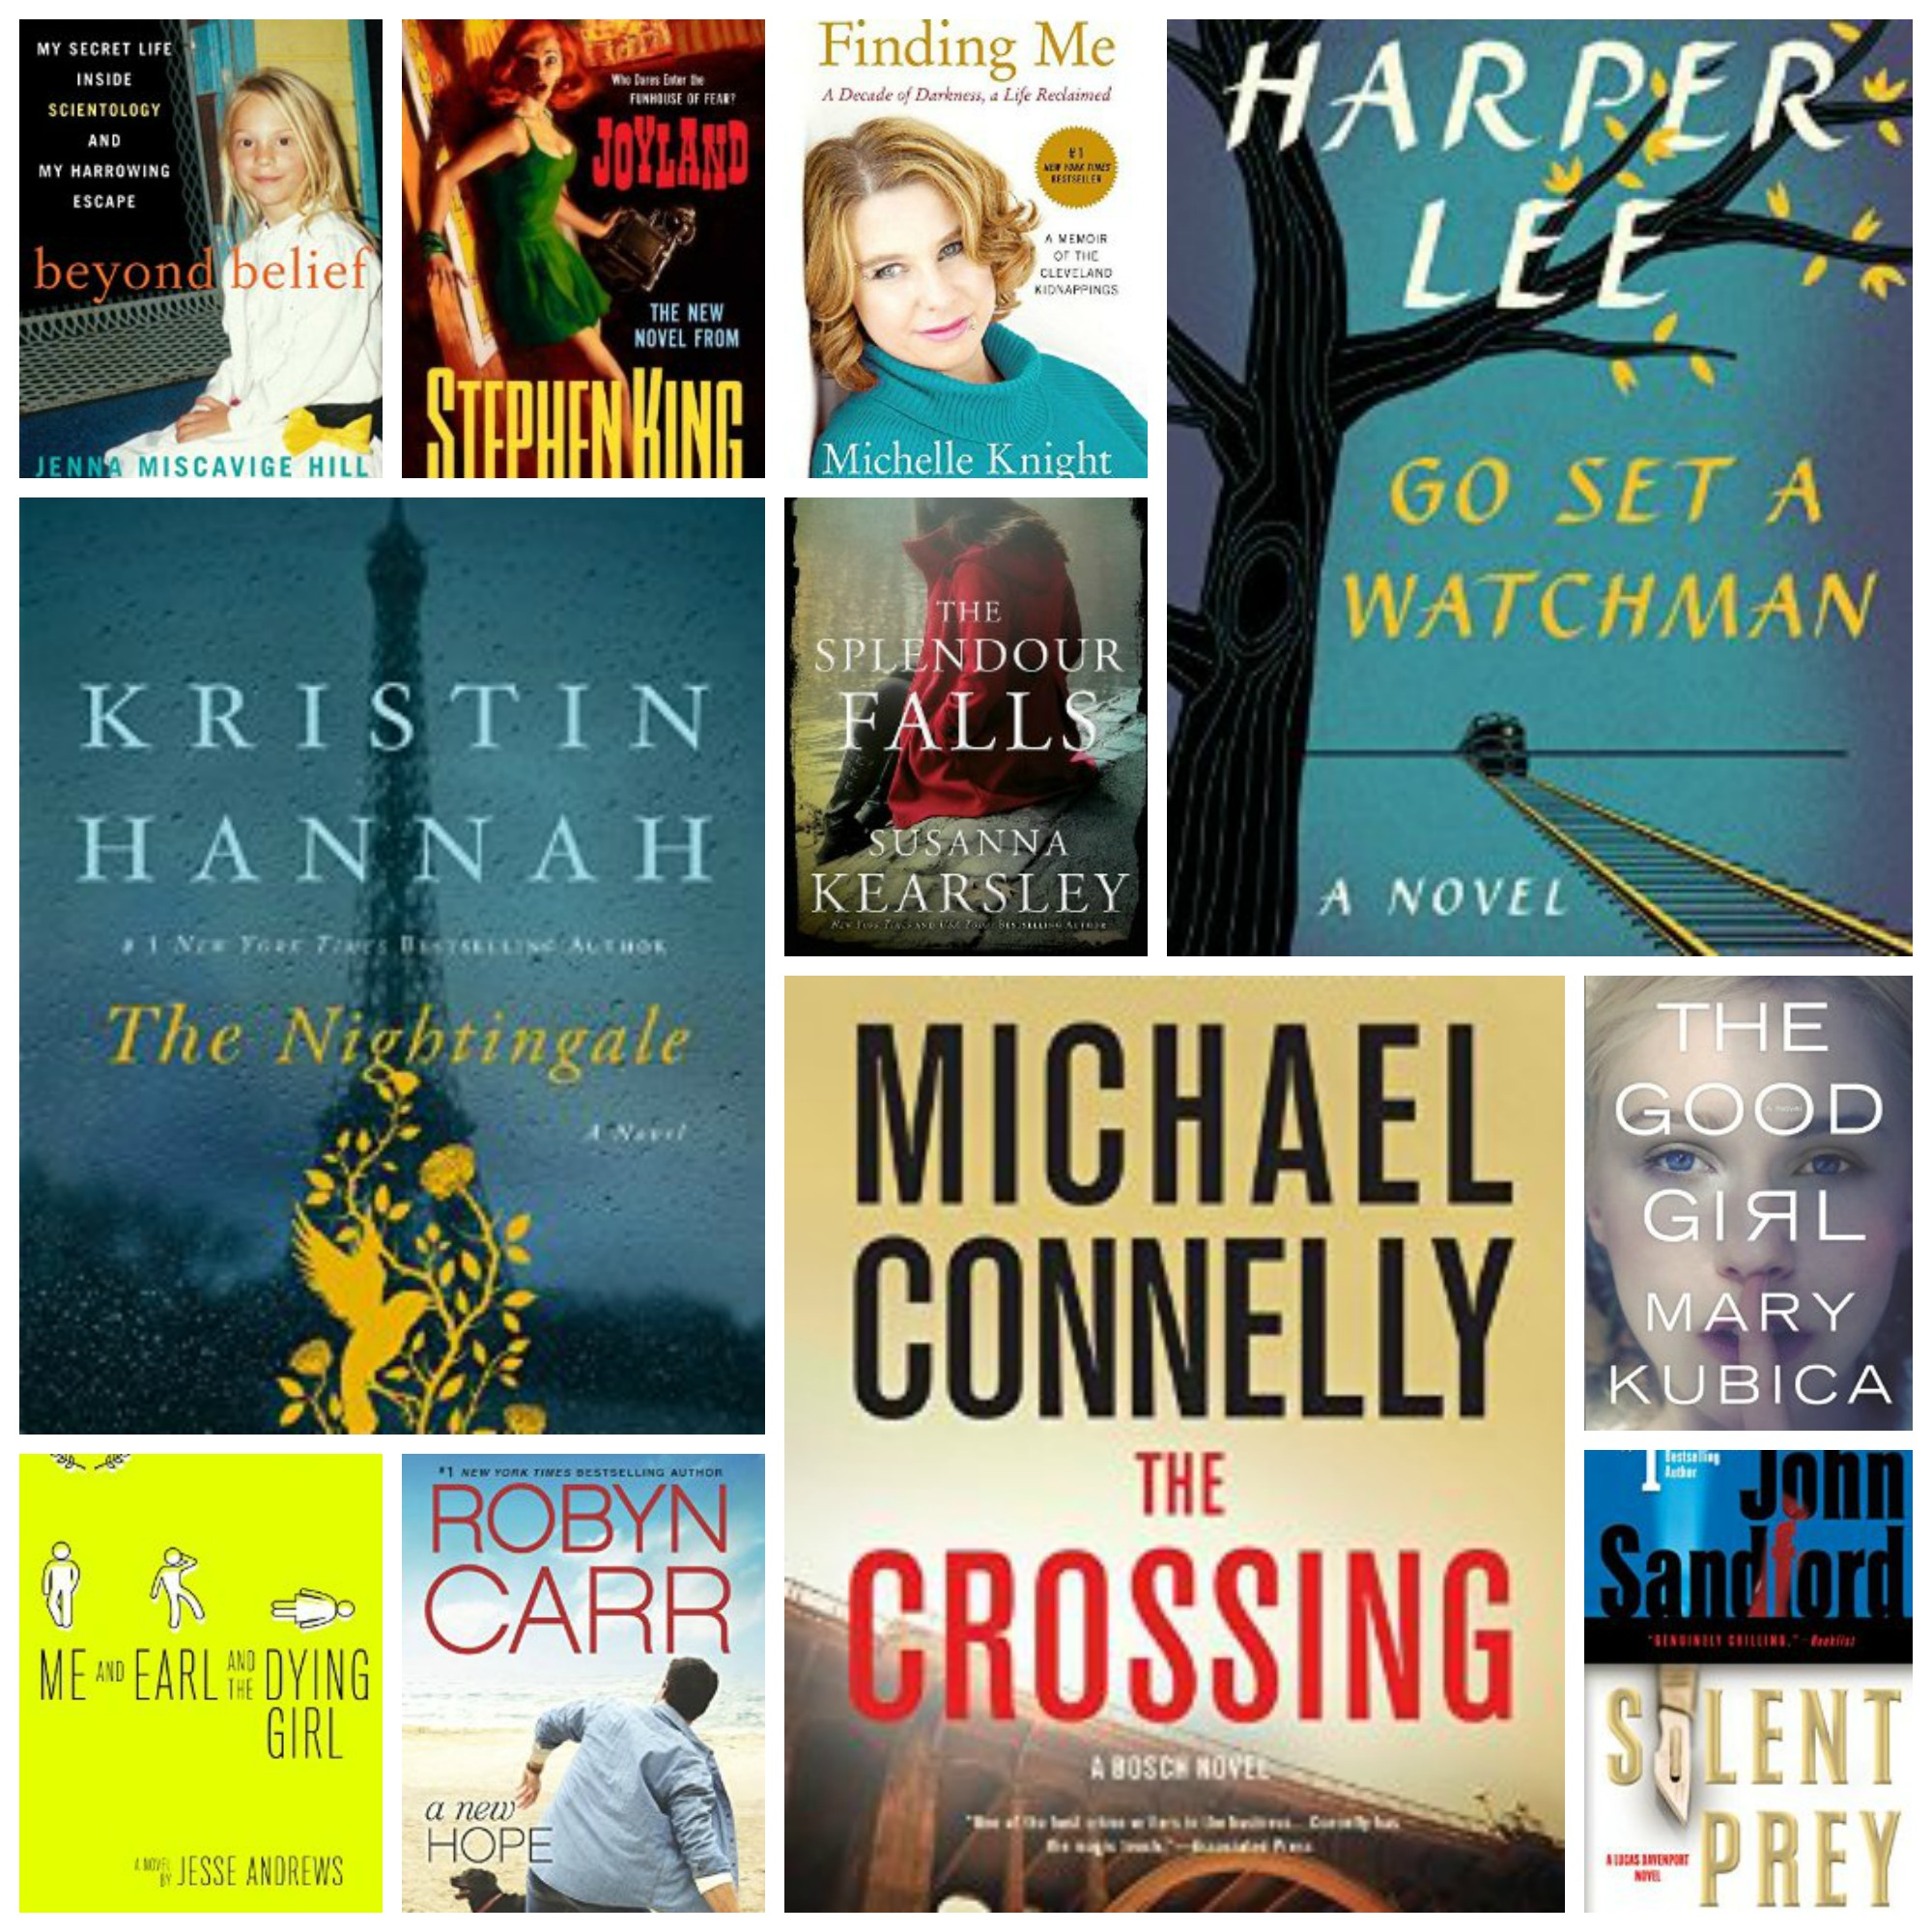 BookGorilla Email Alert for 11/30/15